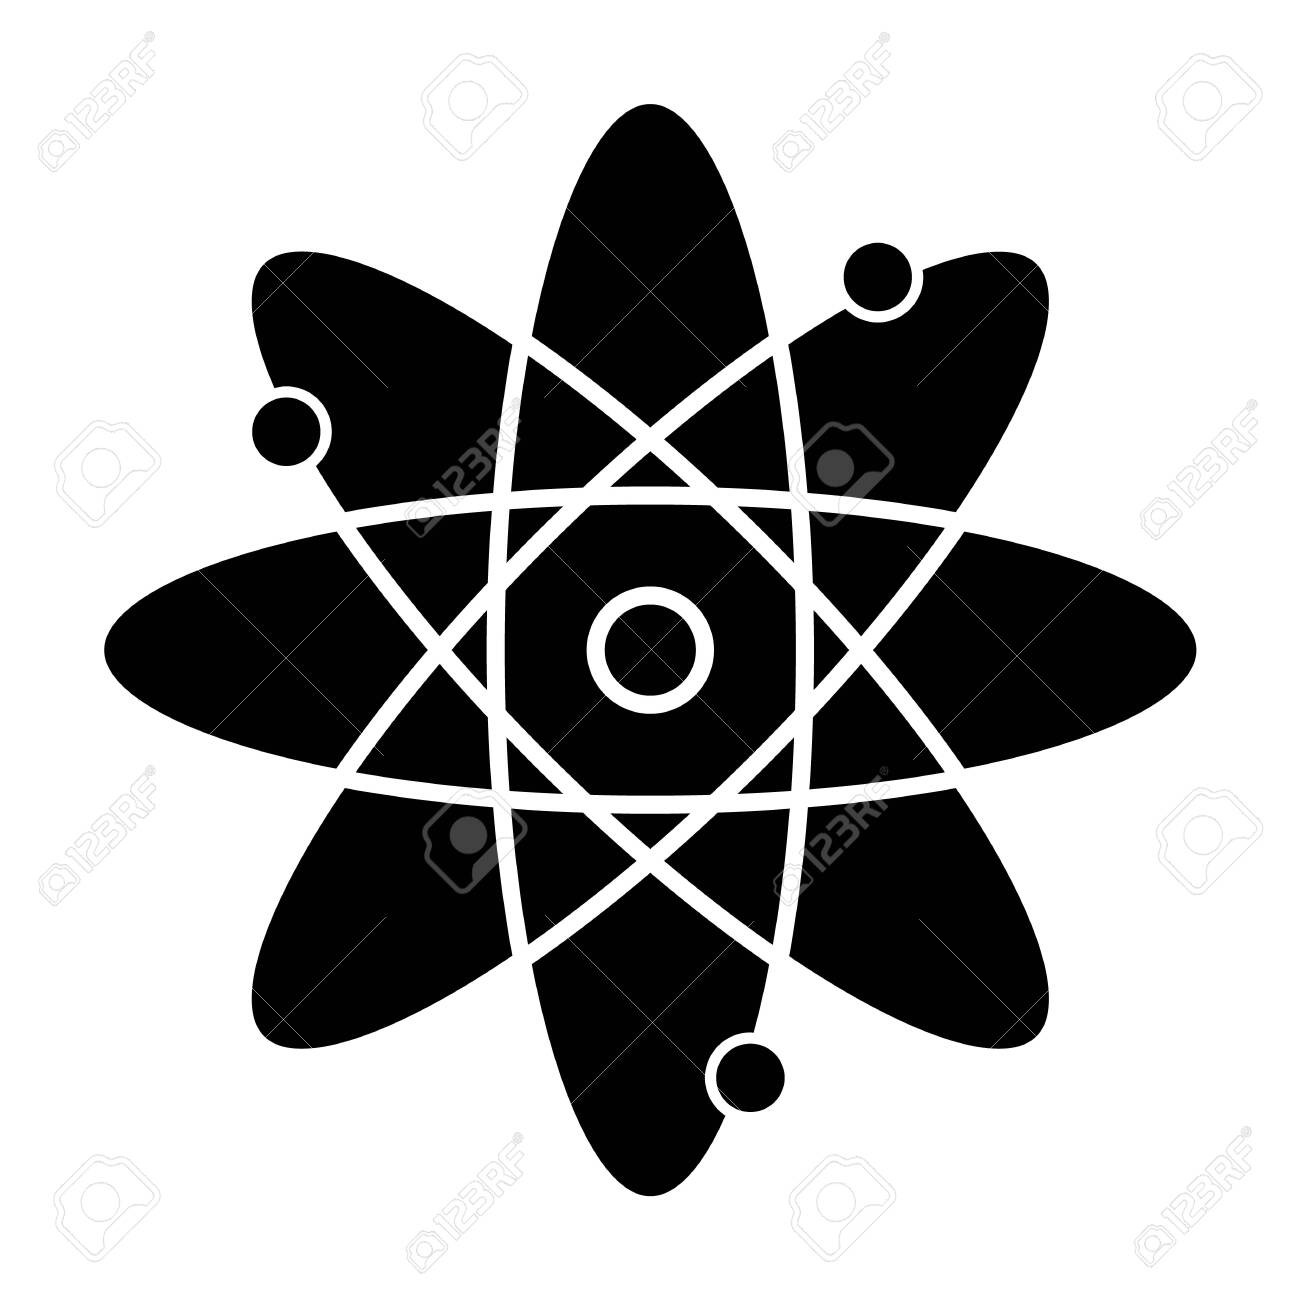 molecule atom glyph icon nuclear energy atom core with electrons royalty free cliparts vectors and stock illustration image 137398152 molecule atom glyph icon nuclear energy atom core with electrons